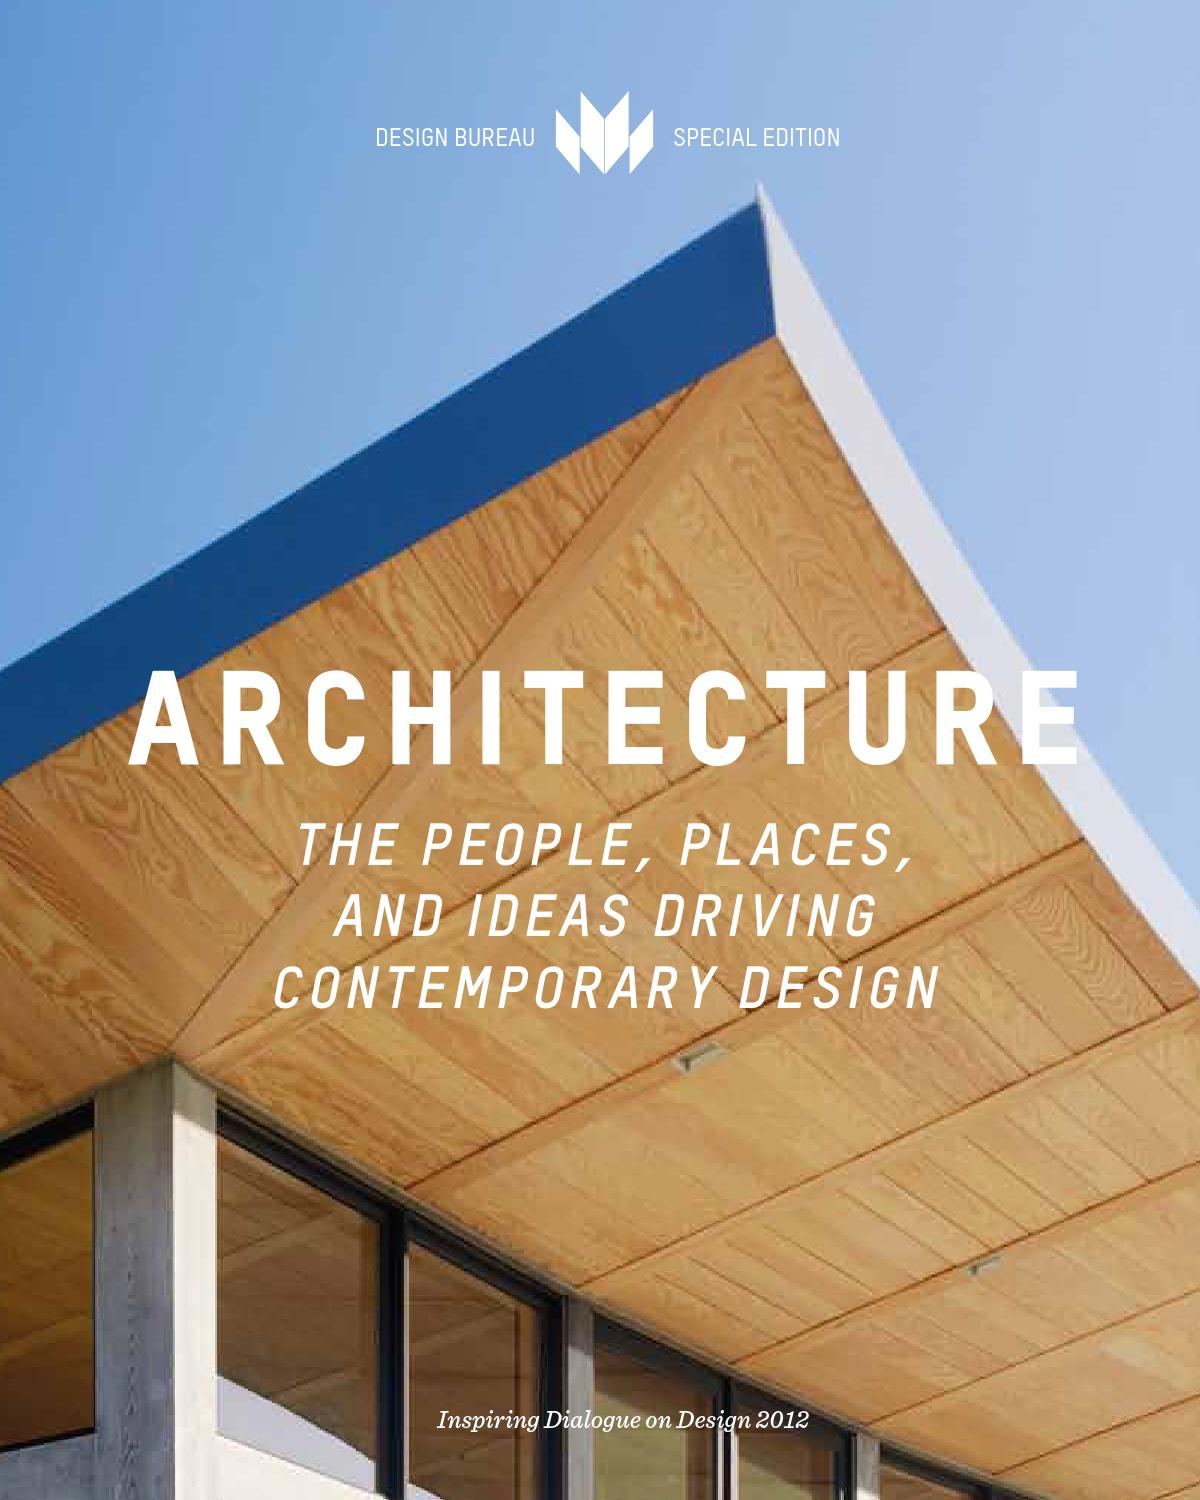 Architecture volume 1 by alarm press issuu - Architecturen volumes ...